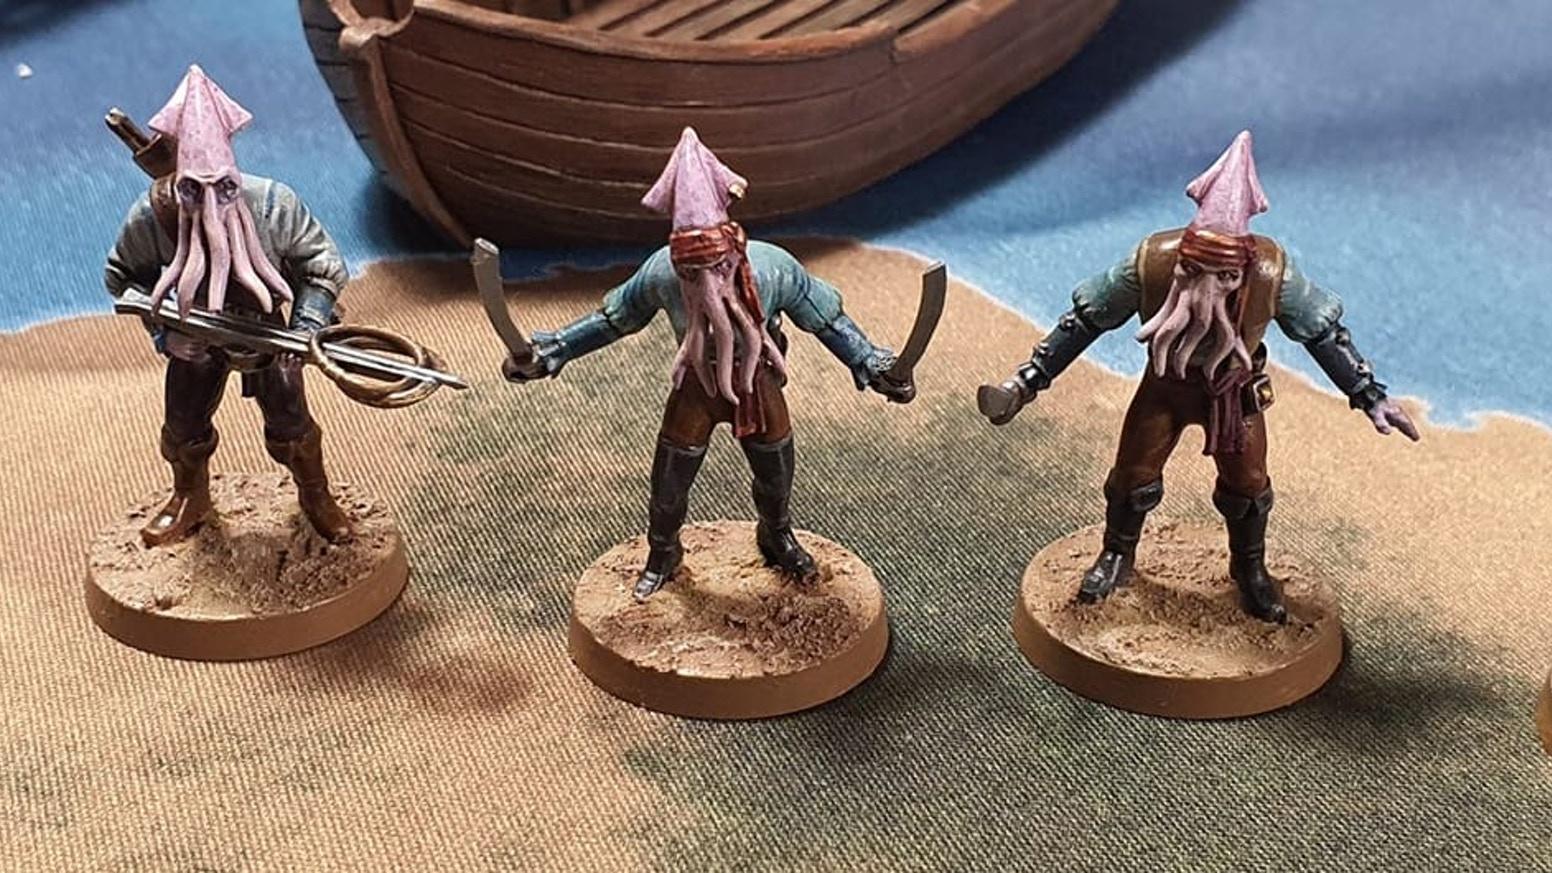 Now funded, you can still pre-order everything from the Kickstarter Campaign here:https://pirates-of-the-dread-sea-orc-goblin-and-skrier-pirates.backerkit.com/hosted_preorders